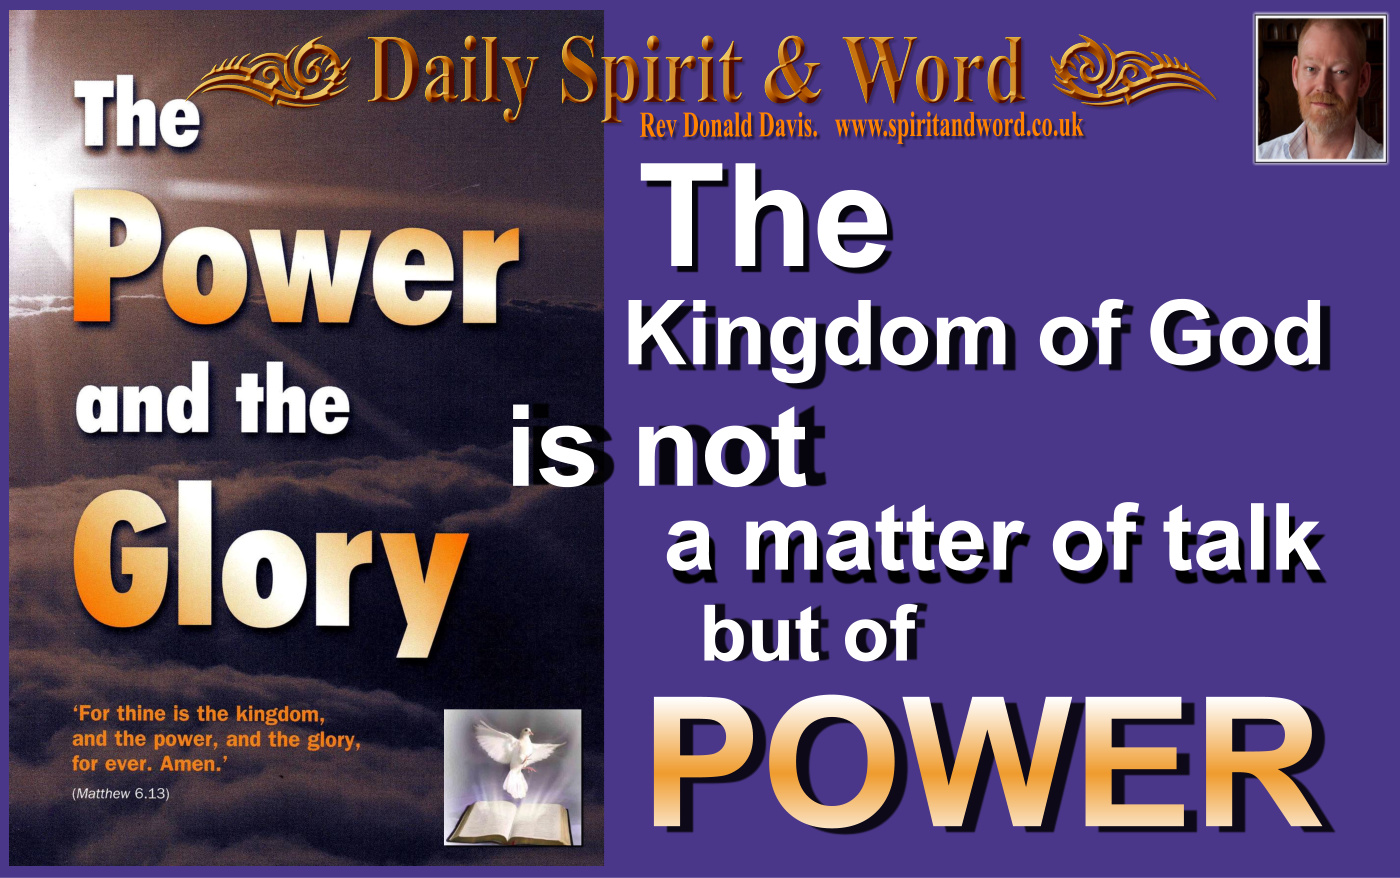 God's Kingdom Power